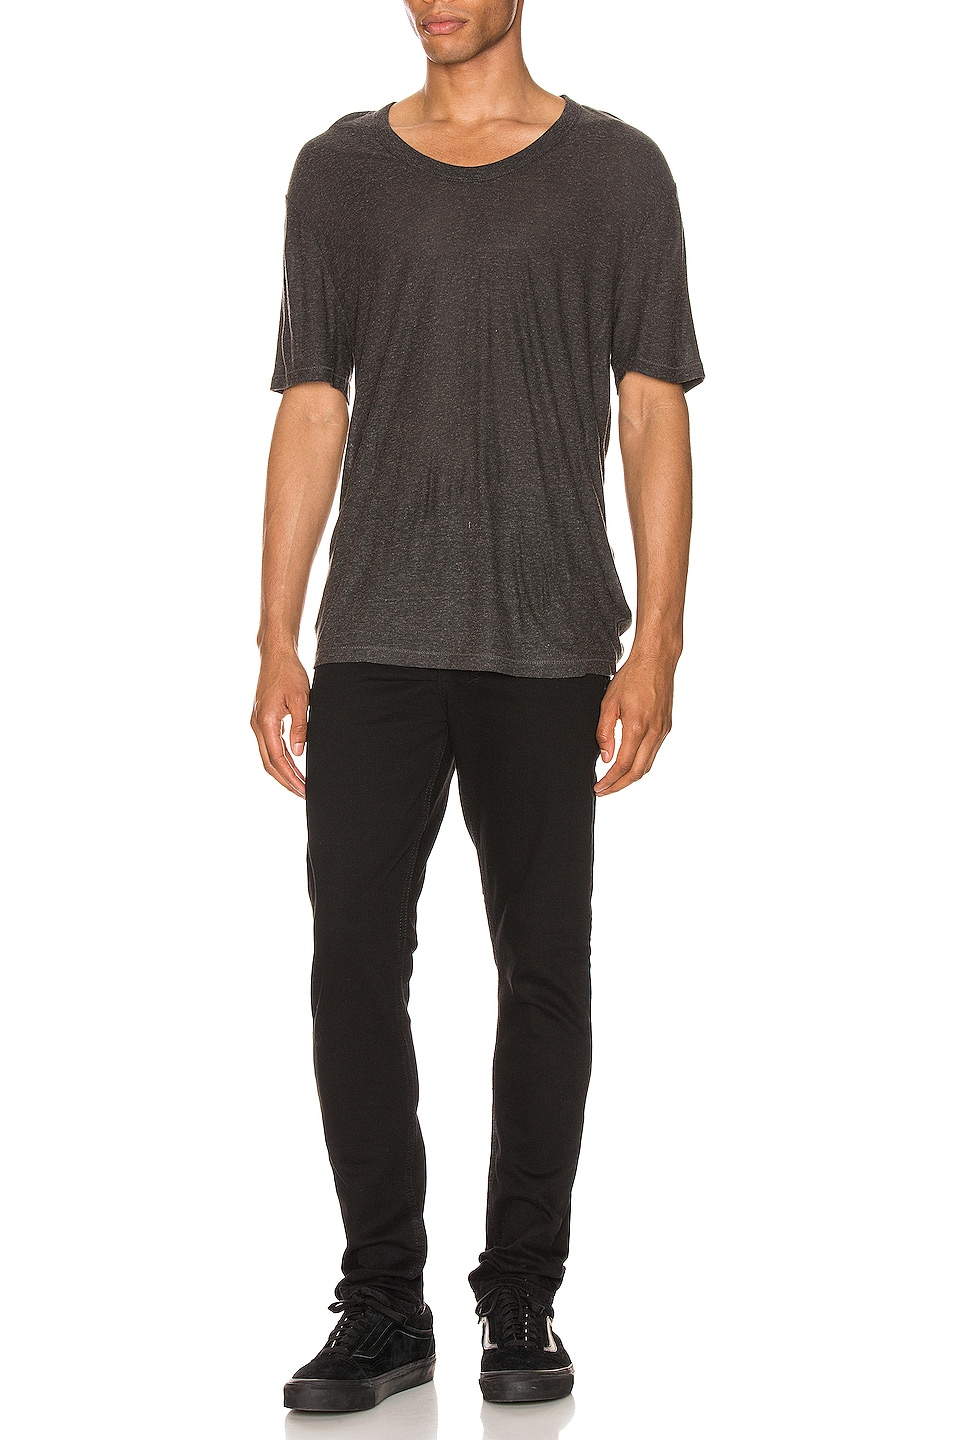 Image 4 of T by Alexander Wang Low Neck Tee in Charcoal